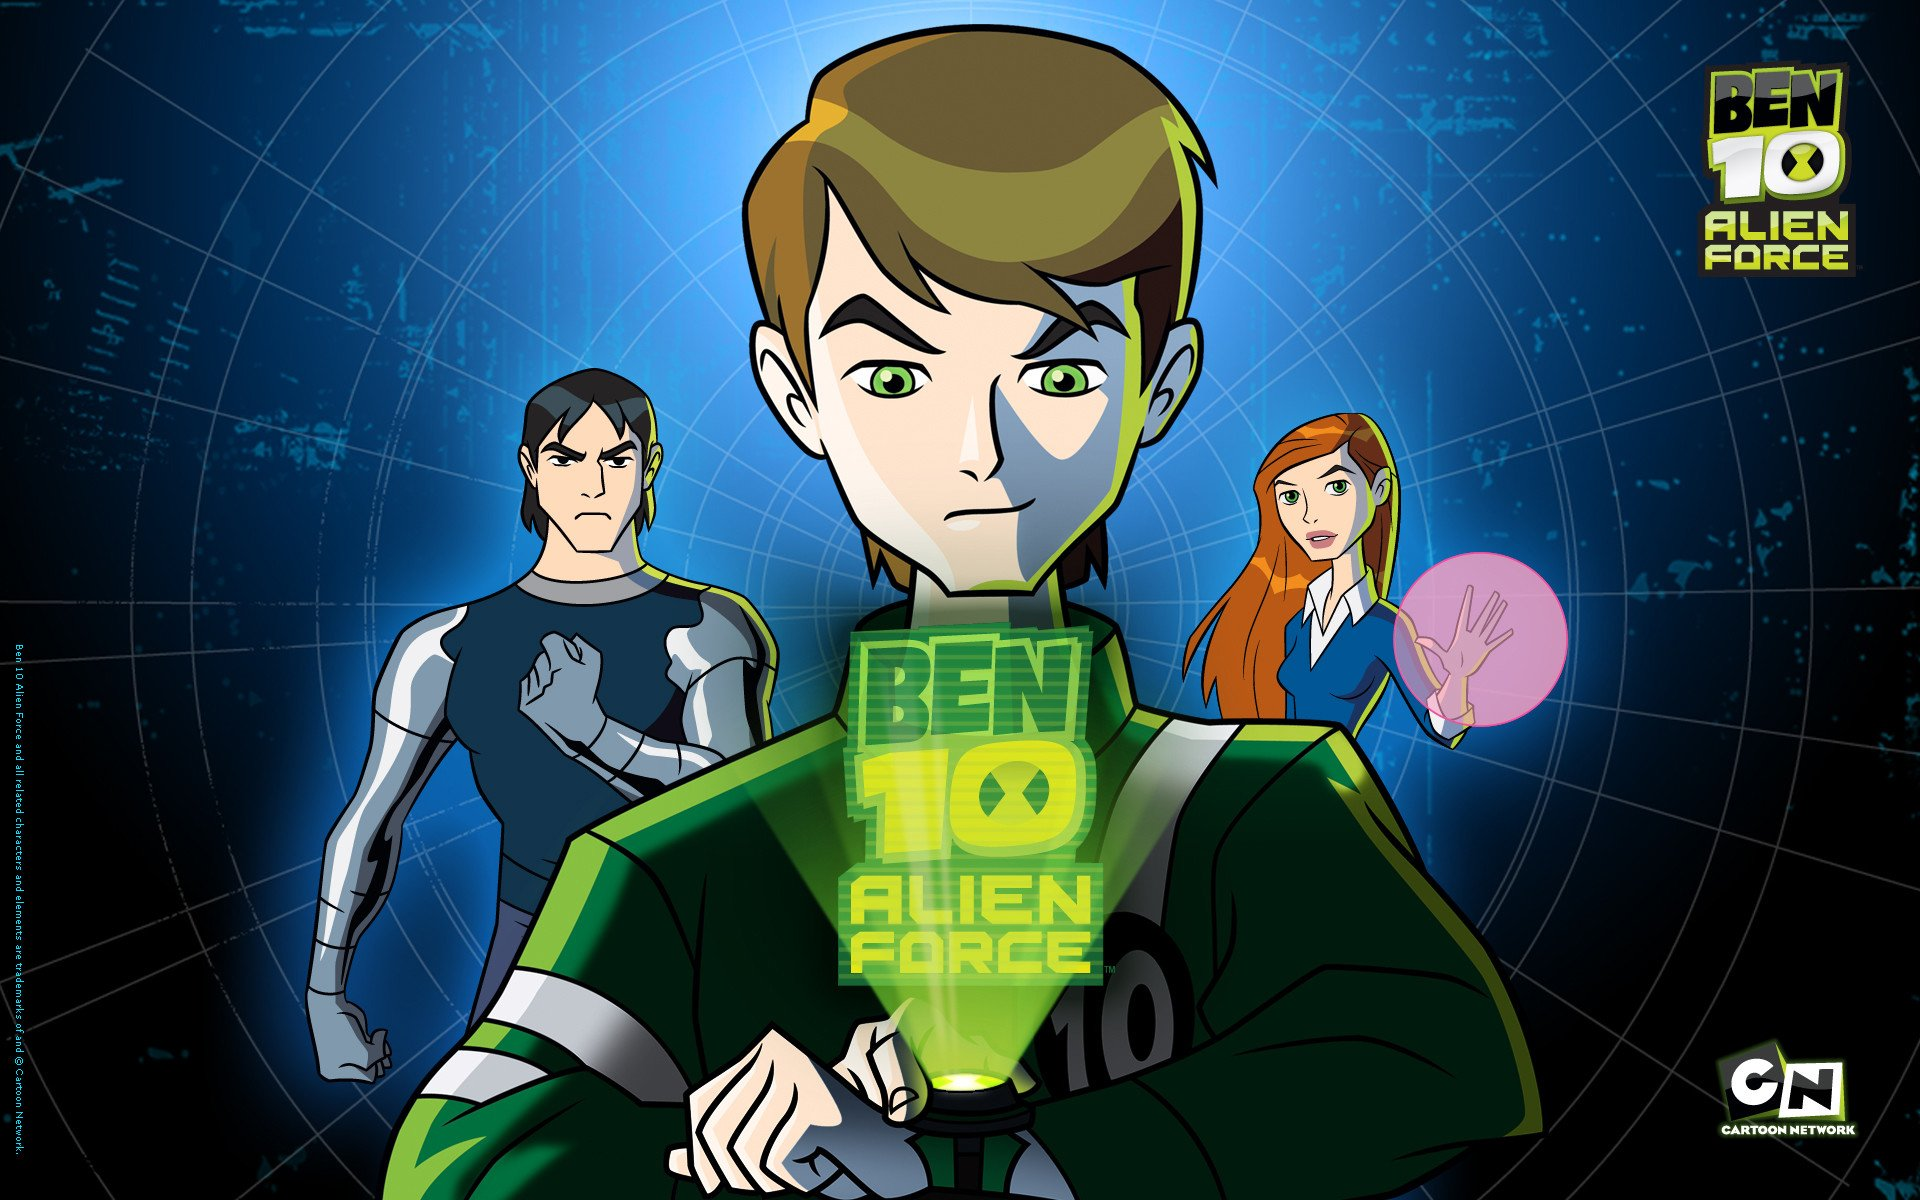 5 Ben 10 Alien Force Hd Wallpapers Background Images Wallpaper Abyss